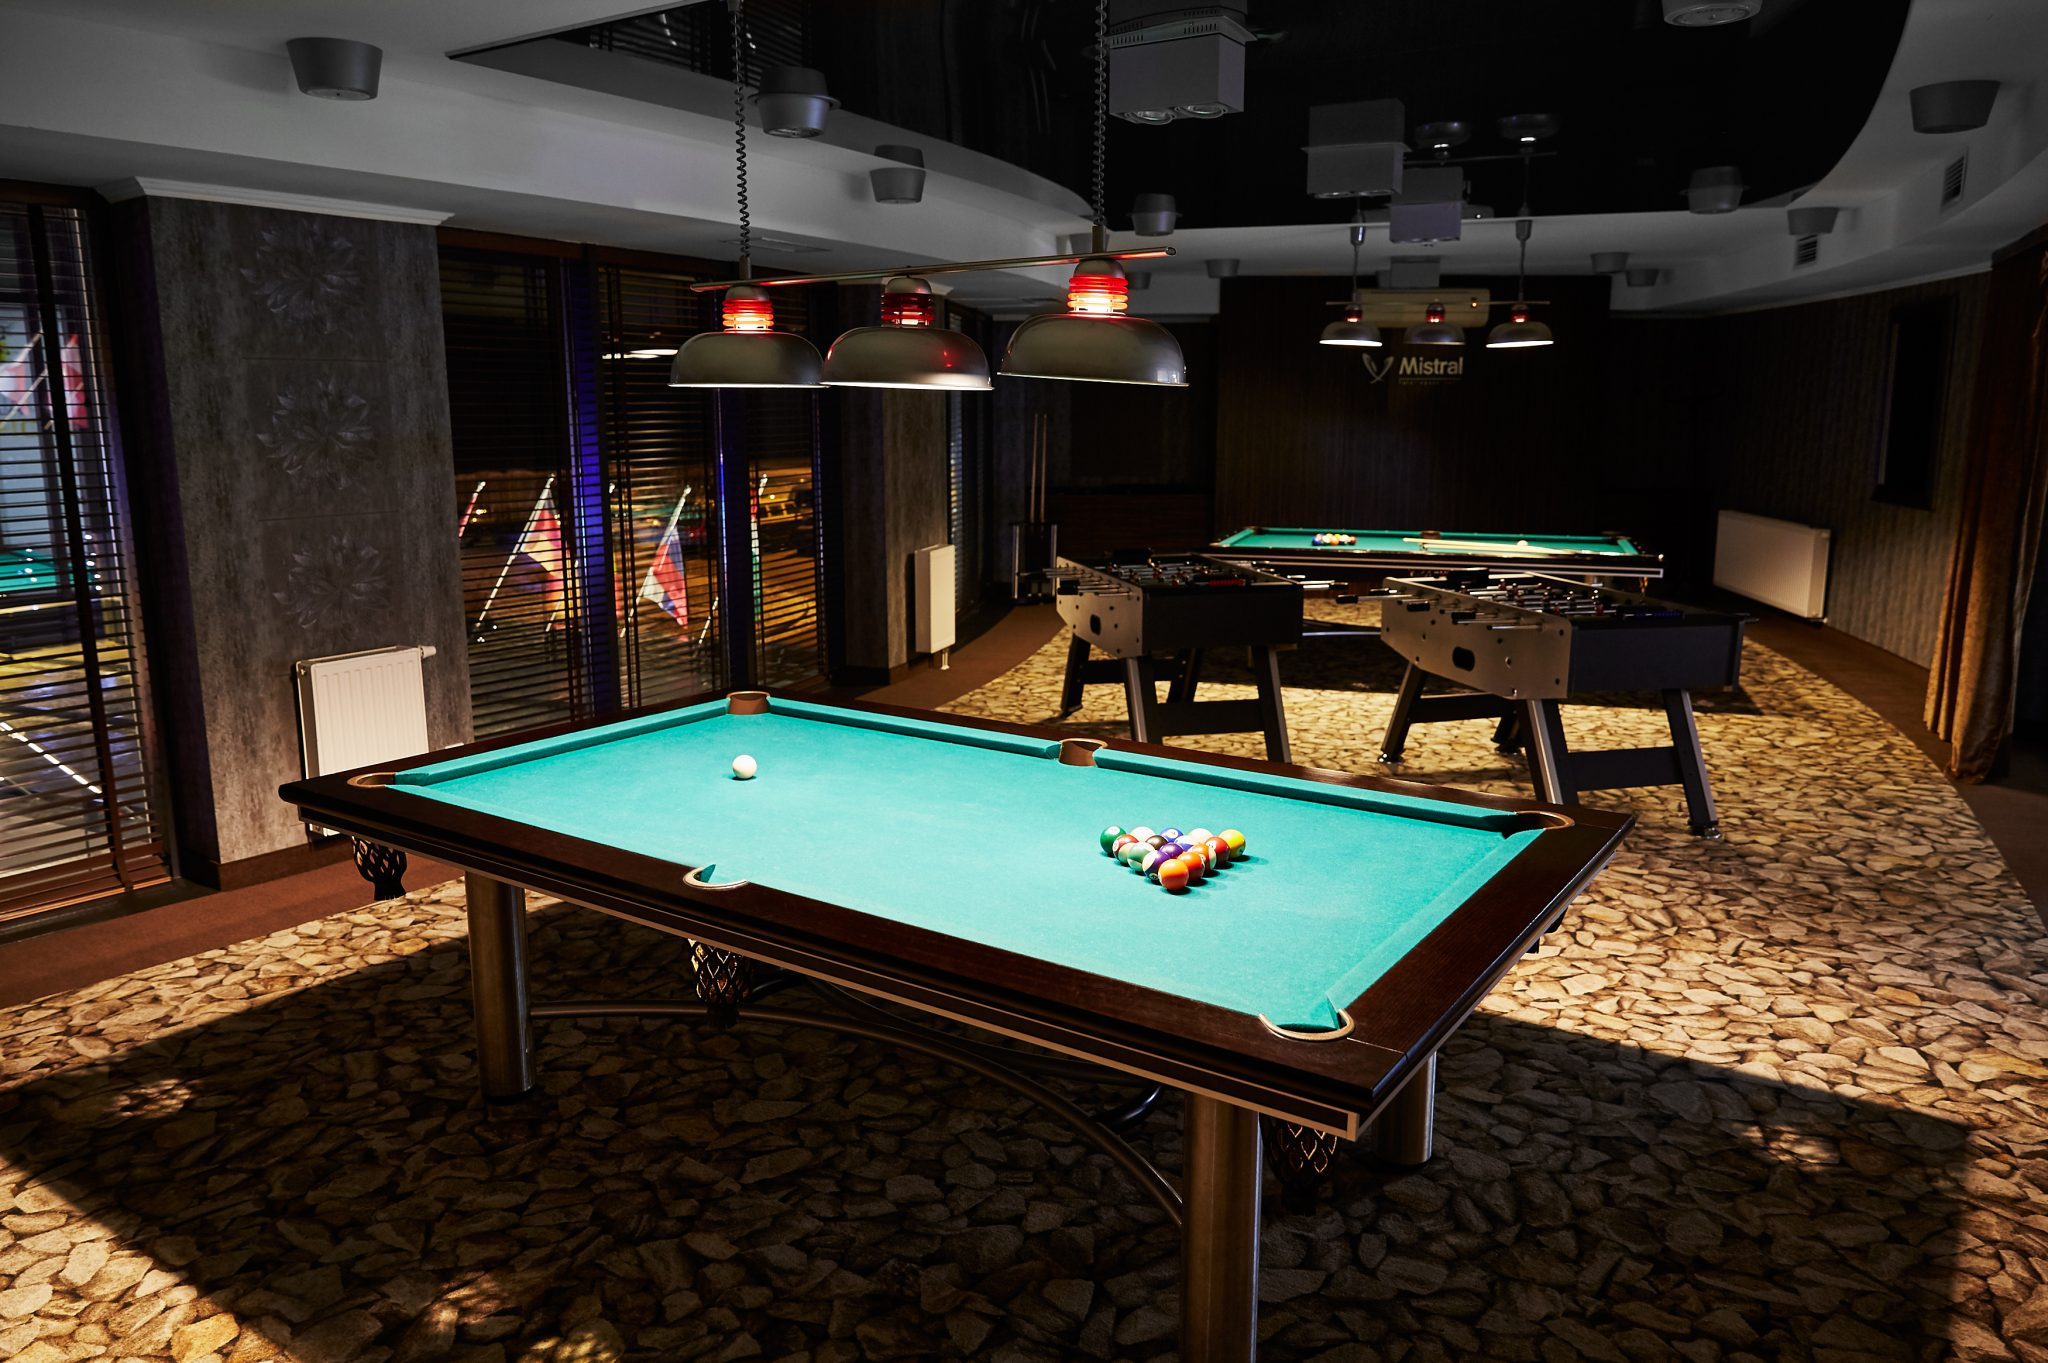 Pro football camps - Hotel Mistral billiard table - Road to Sport